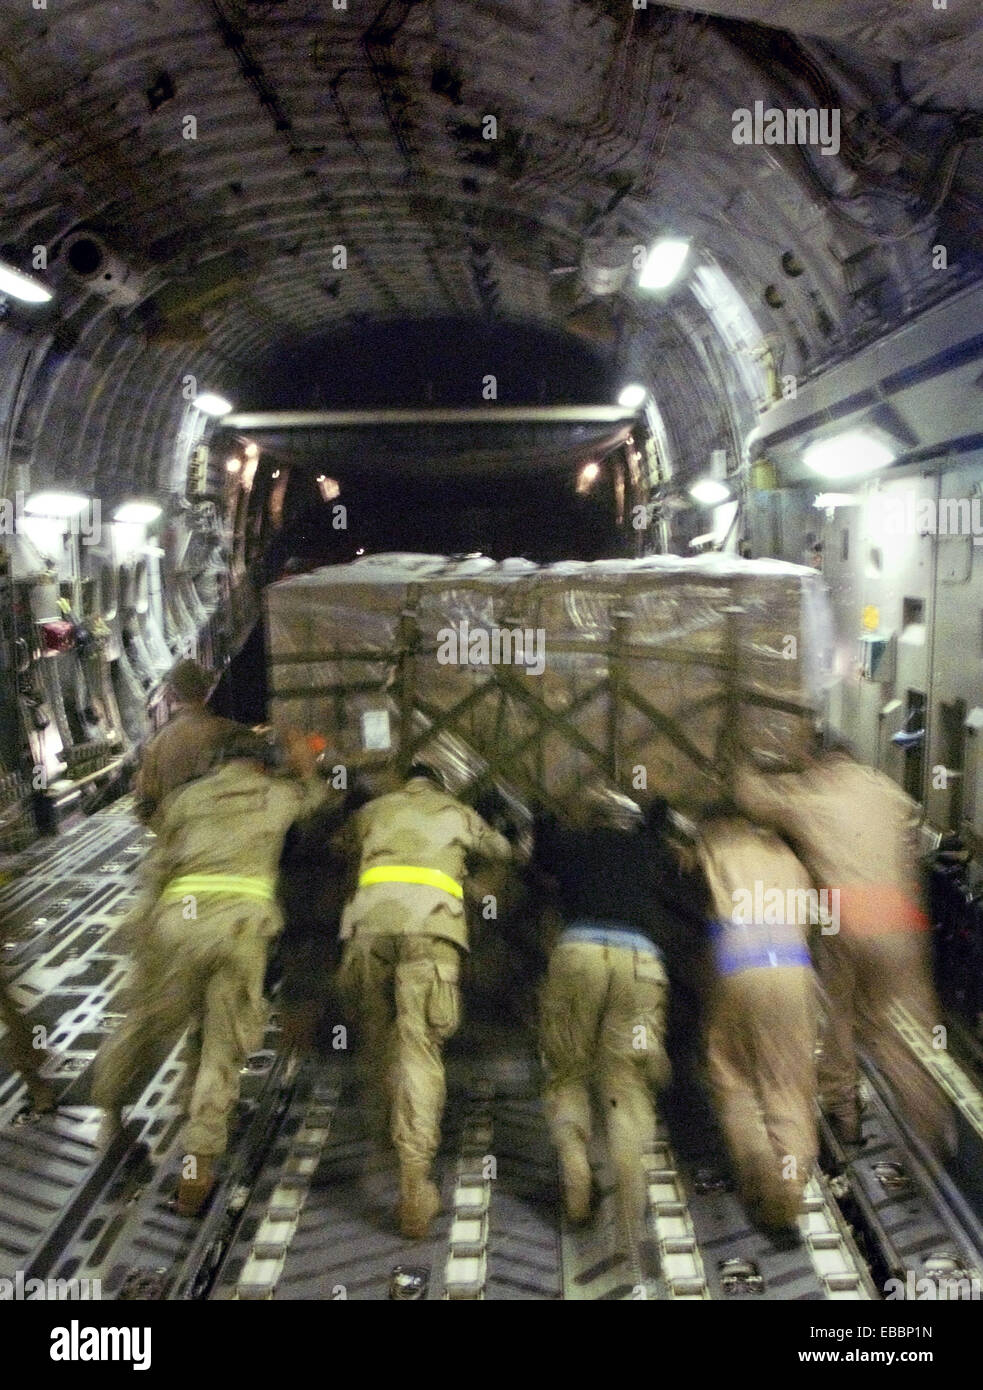 CHAKLALA AIR BASE, Pakistan -- Airman offload relief supplies from a C-17 Globemaster III here Oct. 17. The Airmen, - Stock Image